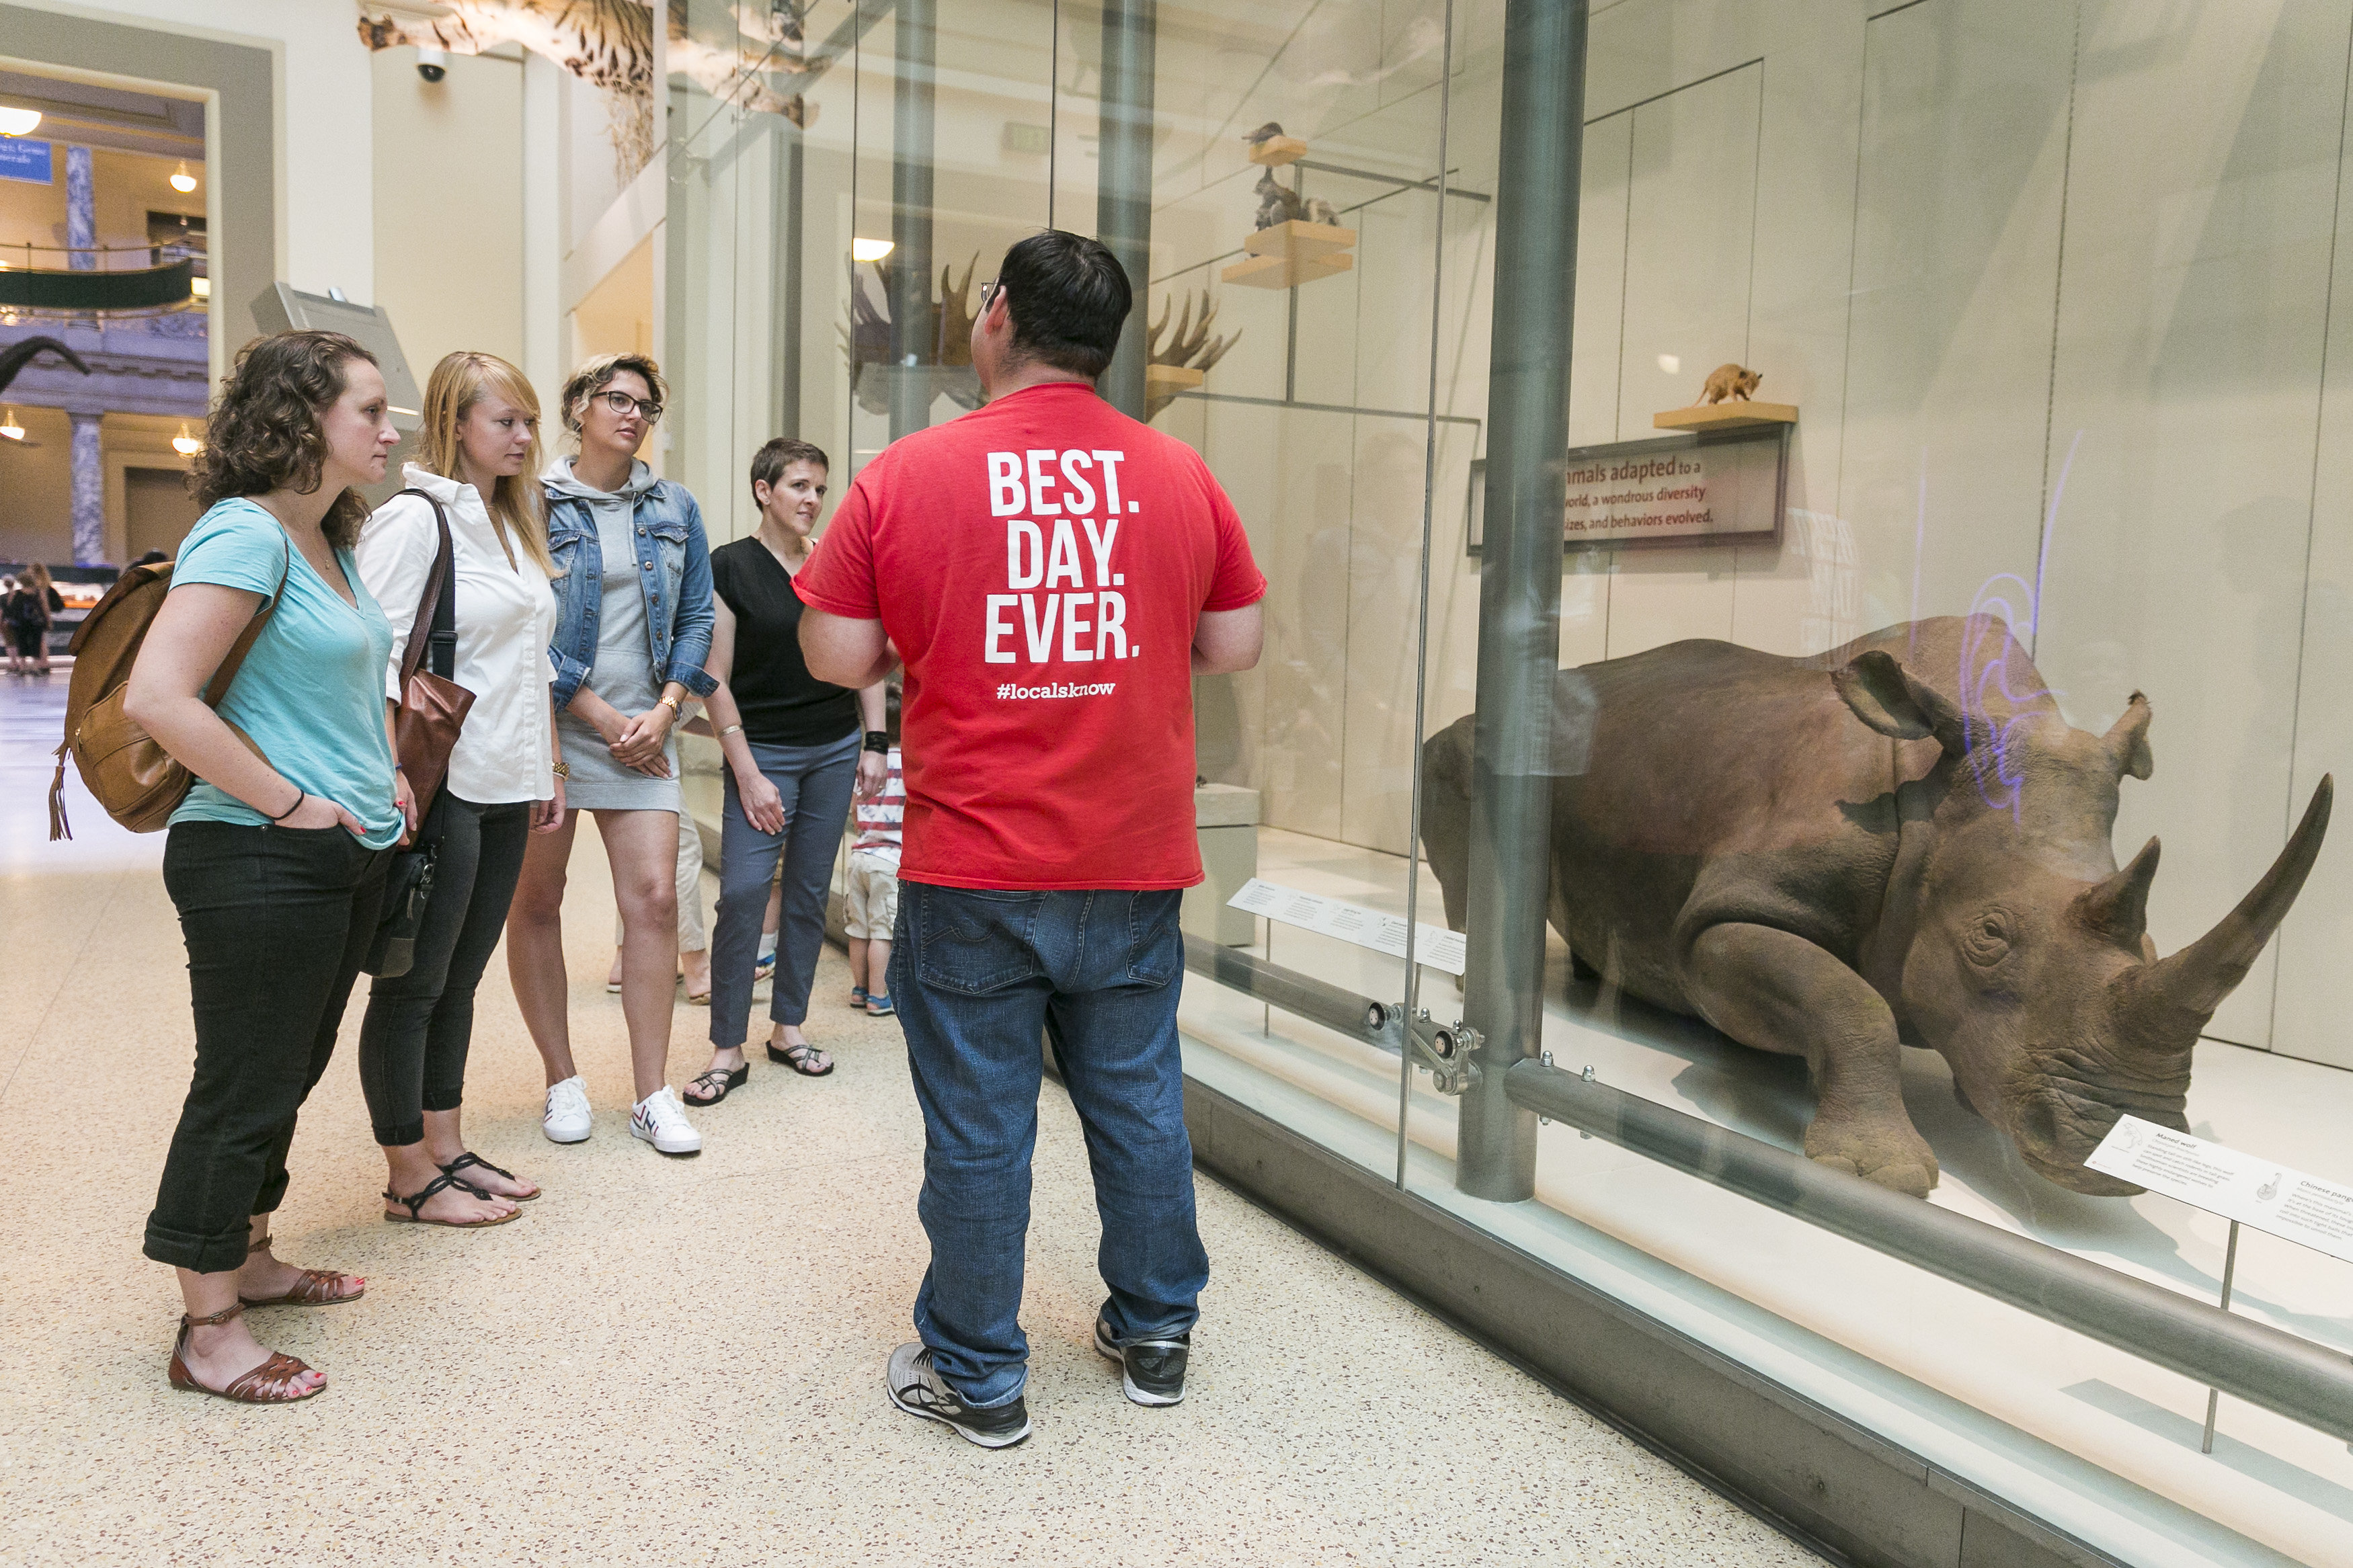 Smithsonian National Museum of Natural History: Guided Tour